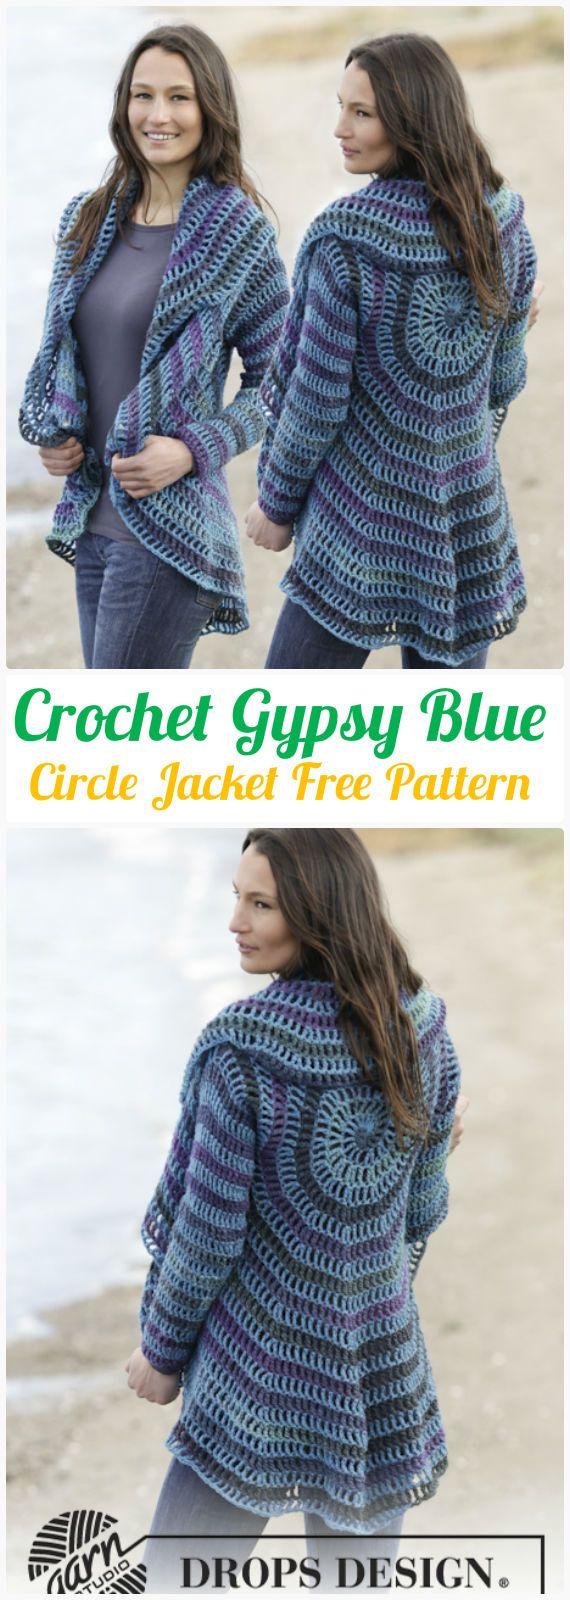 DIY Crochet Gypsy Blue Circle Jacket Free Pattern-Crochet Circular Vest Sweater Jacket Patterns